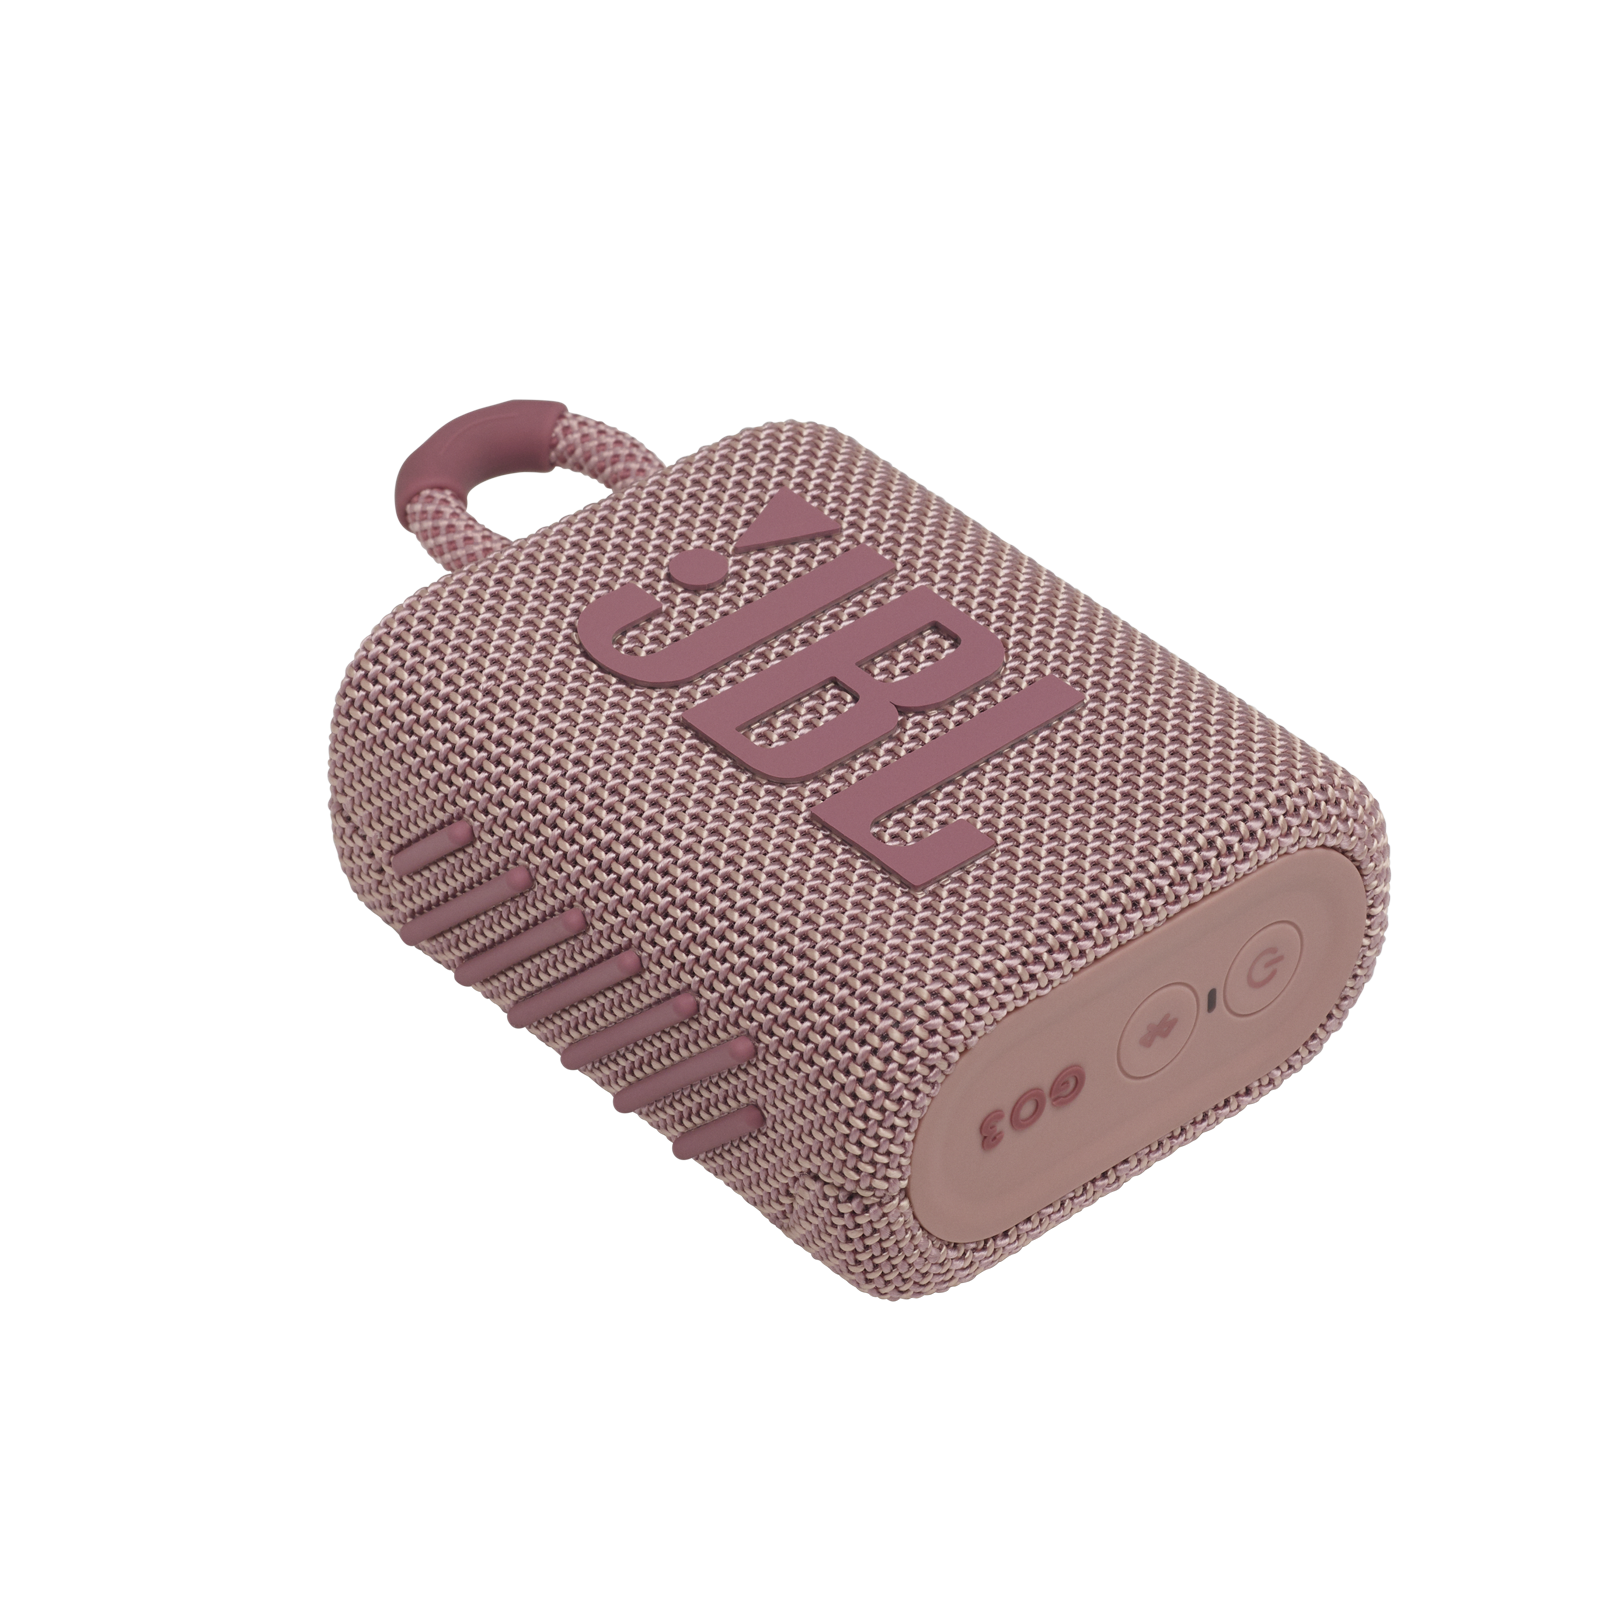 JBL GO 3 - Pink - Portable Waterproof Speaker - Detailshot 3